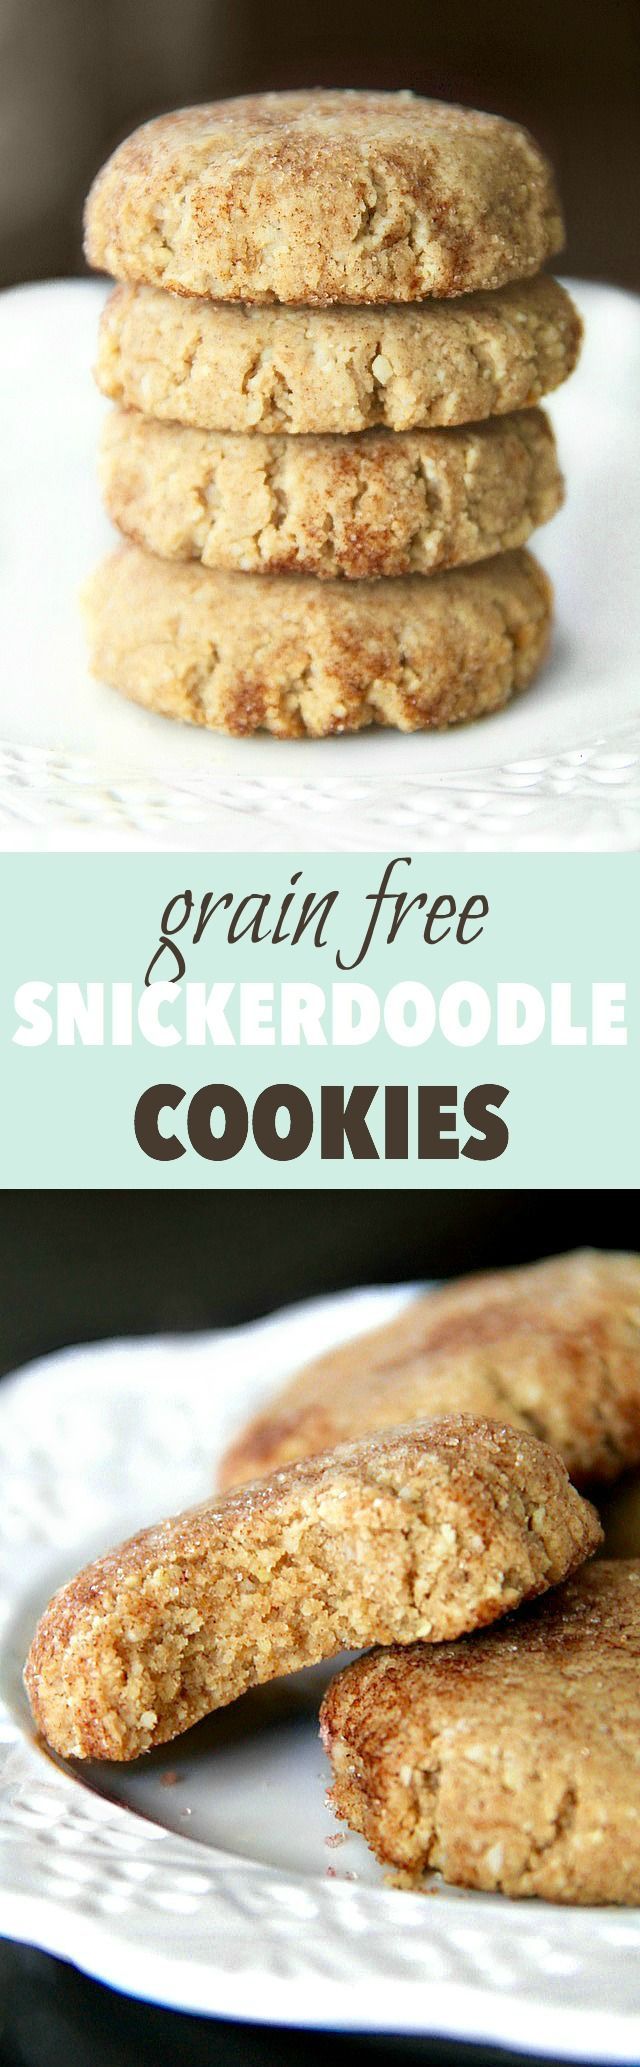 These Grain Free Snickerdoodles have the same soft texture and buttery cinnamon sugar taste of a classic snickerdoodle, but are made without flour, butter, eggs, or refined sugar! | runningwiithspoons.com #vegan #paleo #cookies